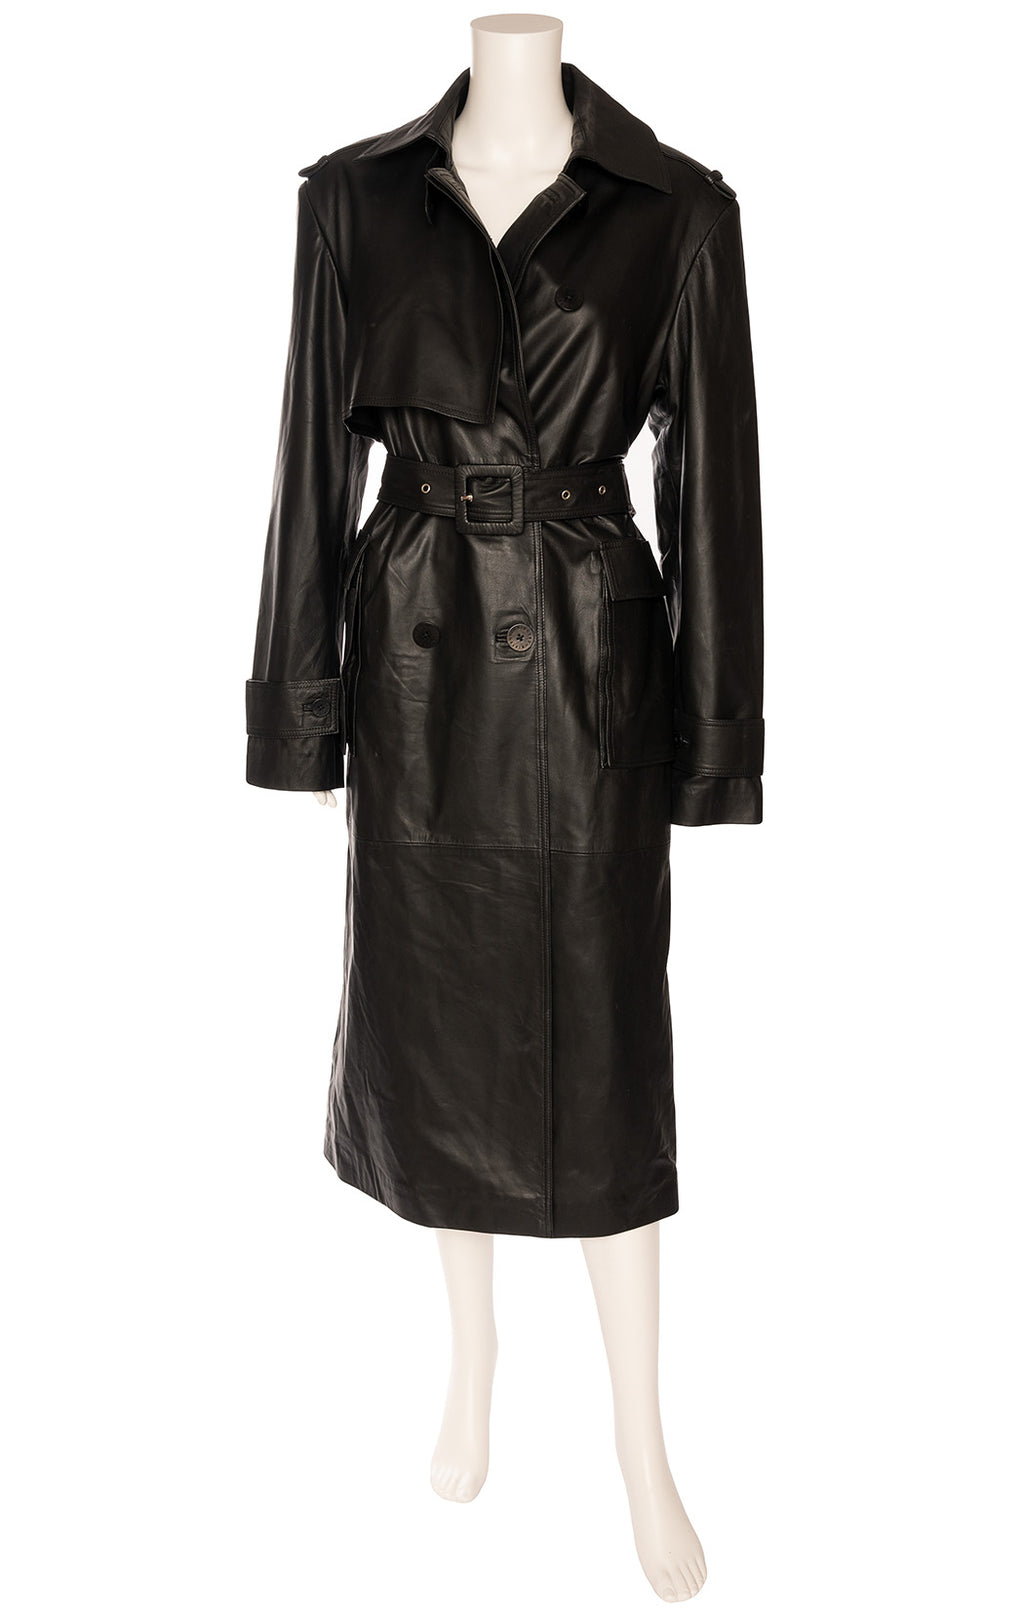 Black leather double breasted trench coat with large collar front flap pockets and matching belt